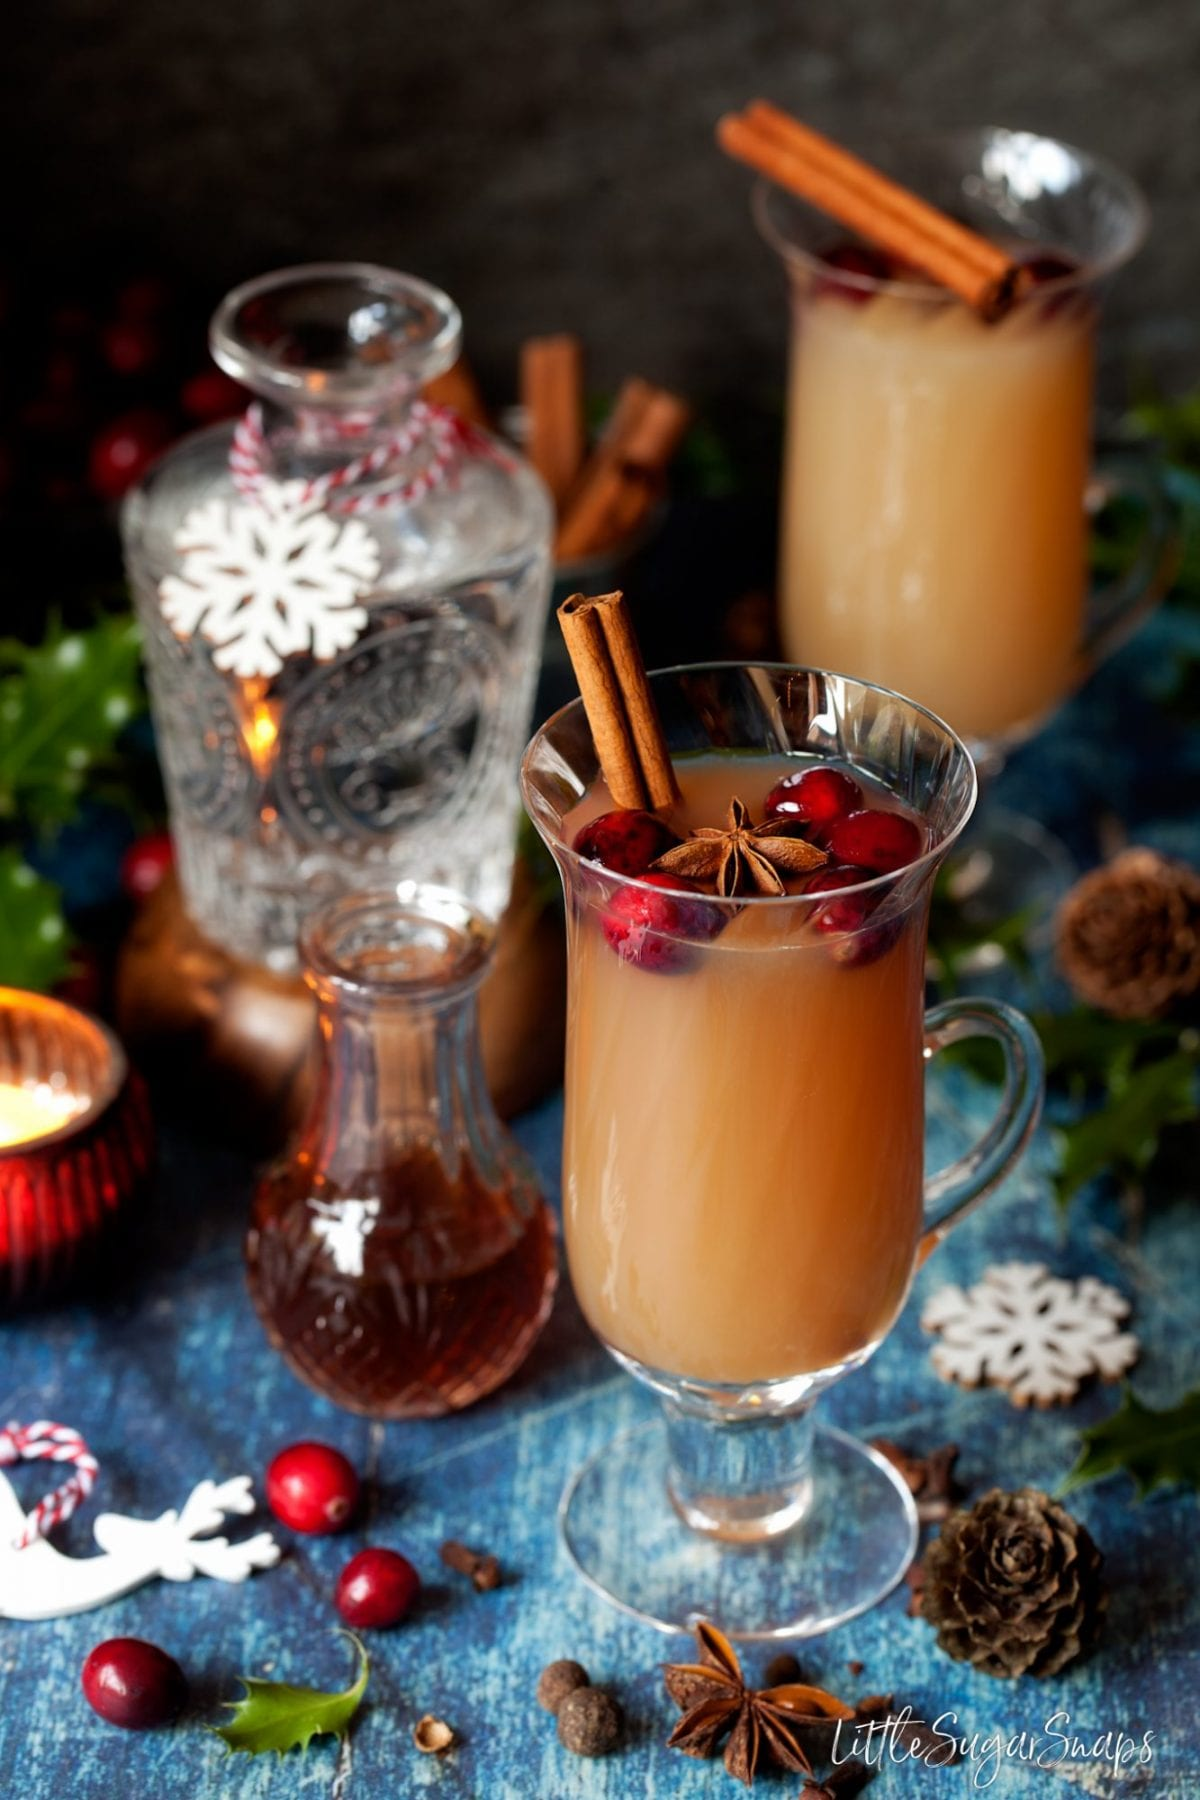 Christmas Mulled Gin and Tonic with apple juice. Served in ornate glasses with cranberries, star anise and cinnamon sticks, with spices lying around